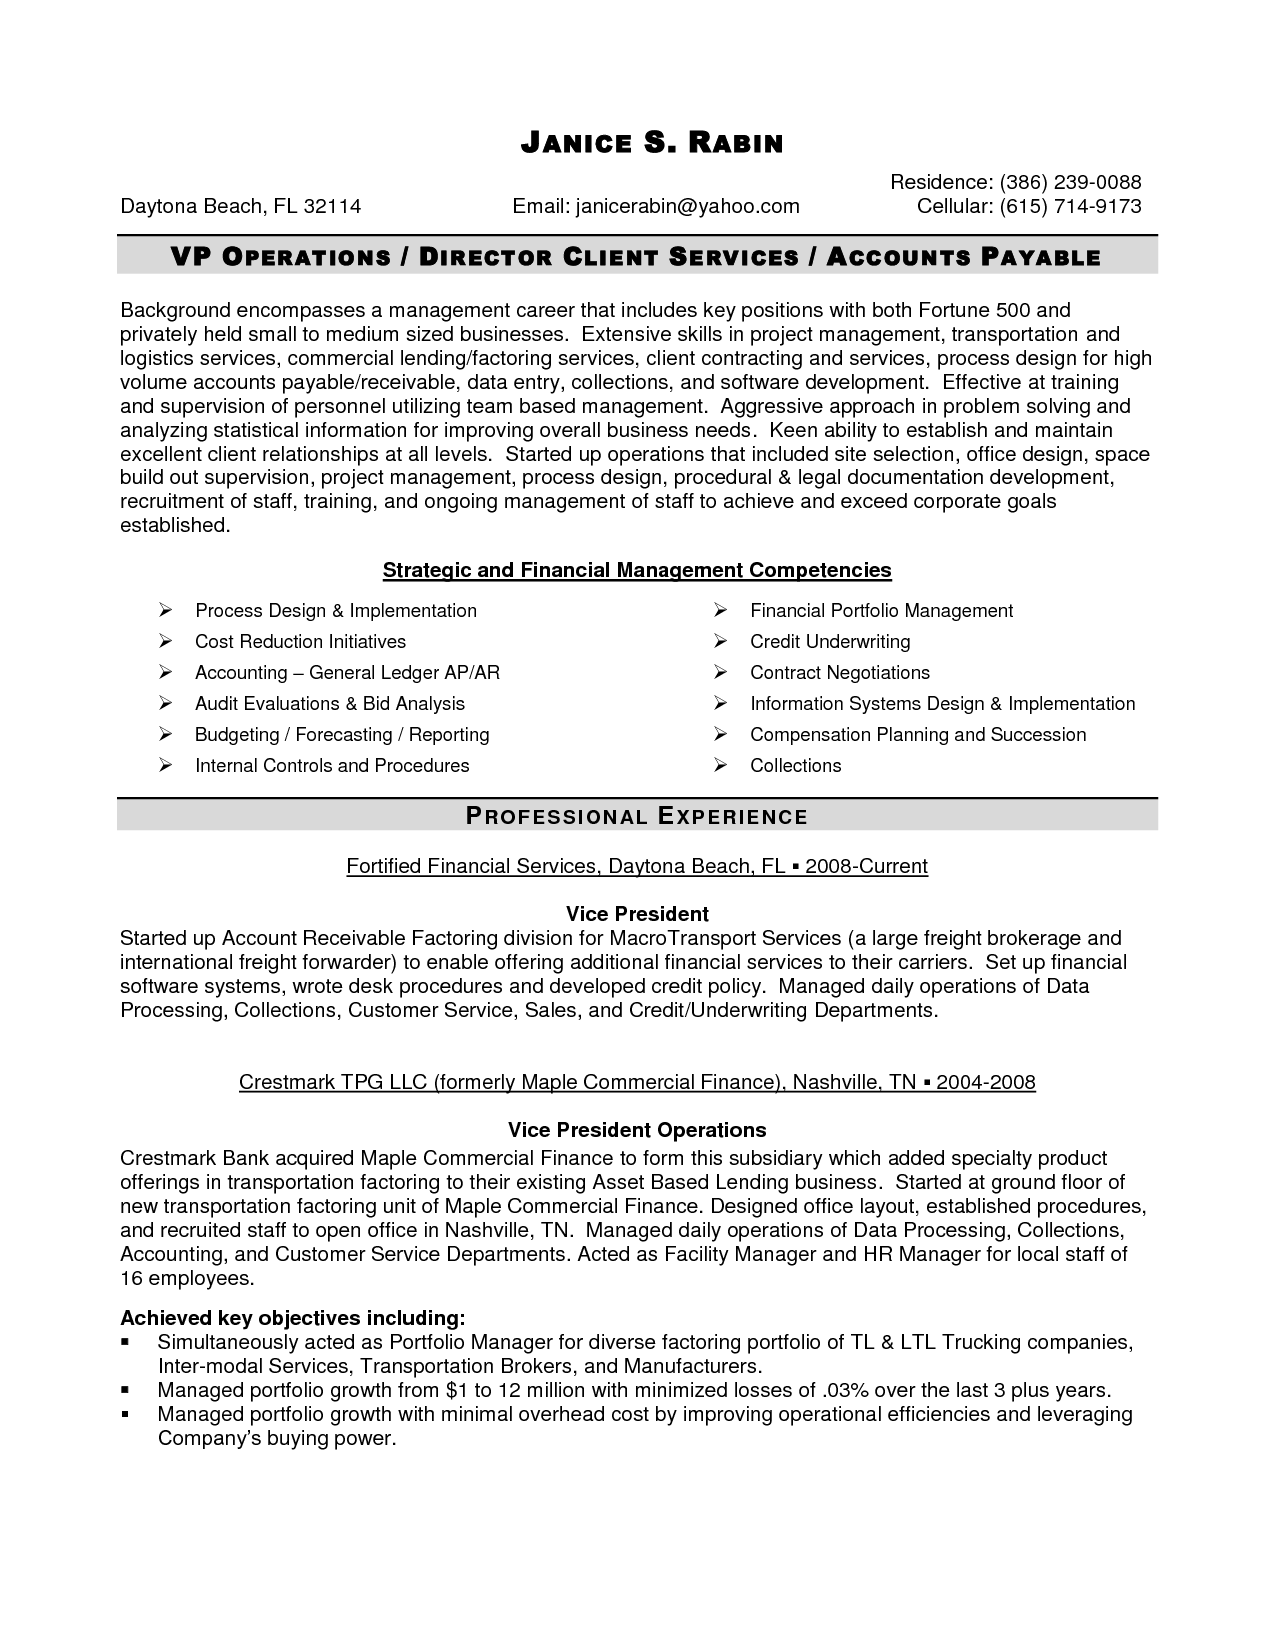 Human Resources Manager Resume Senior Logistic Management Resume  Senior Logistics Finance